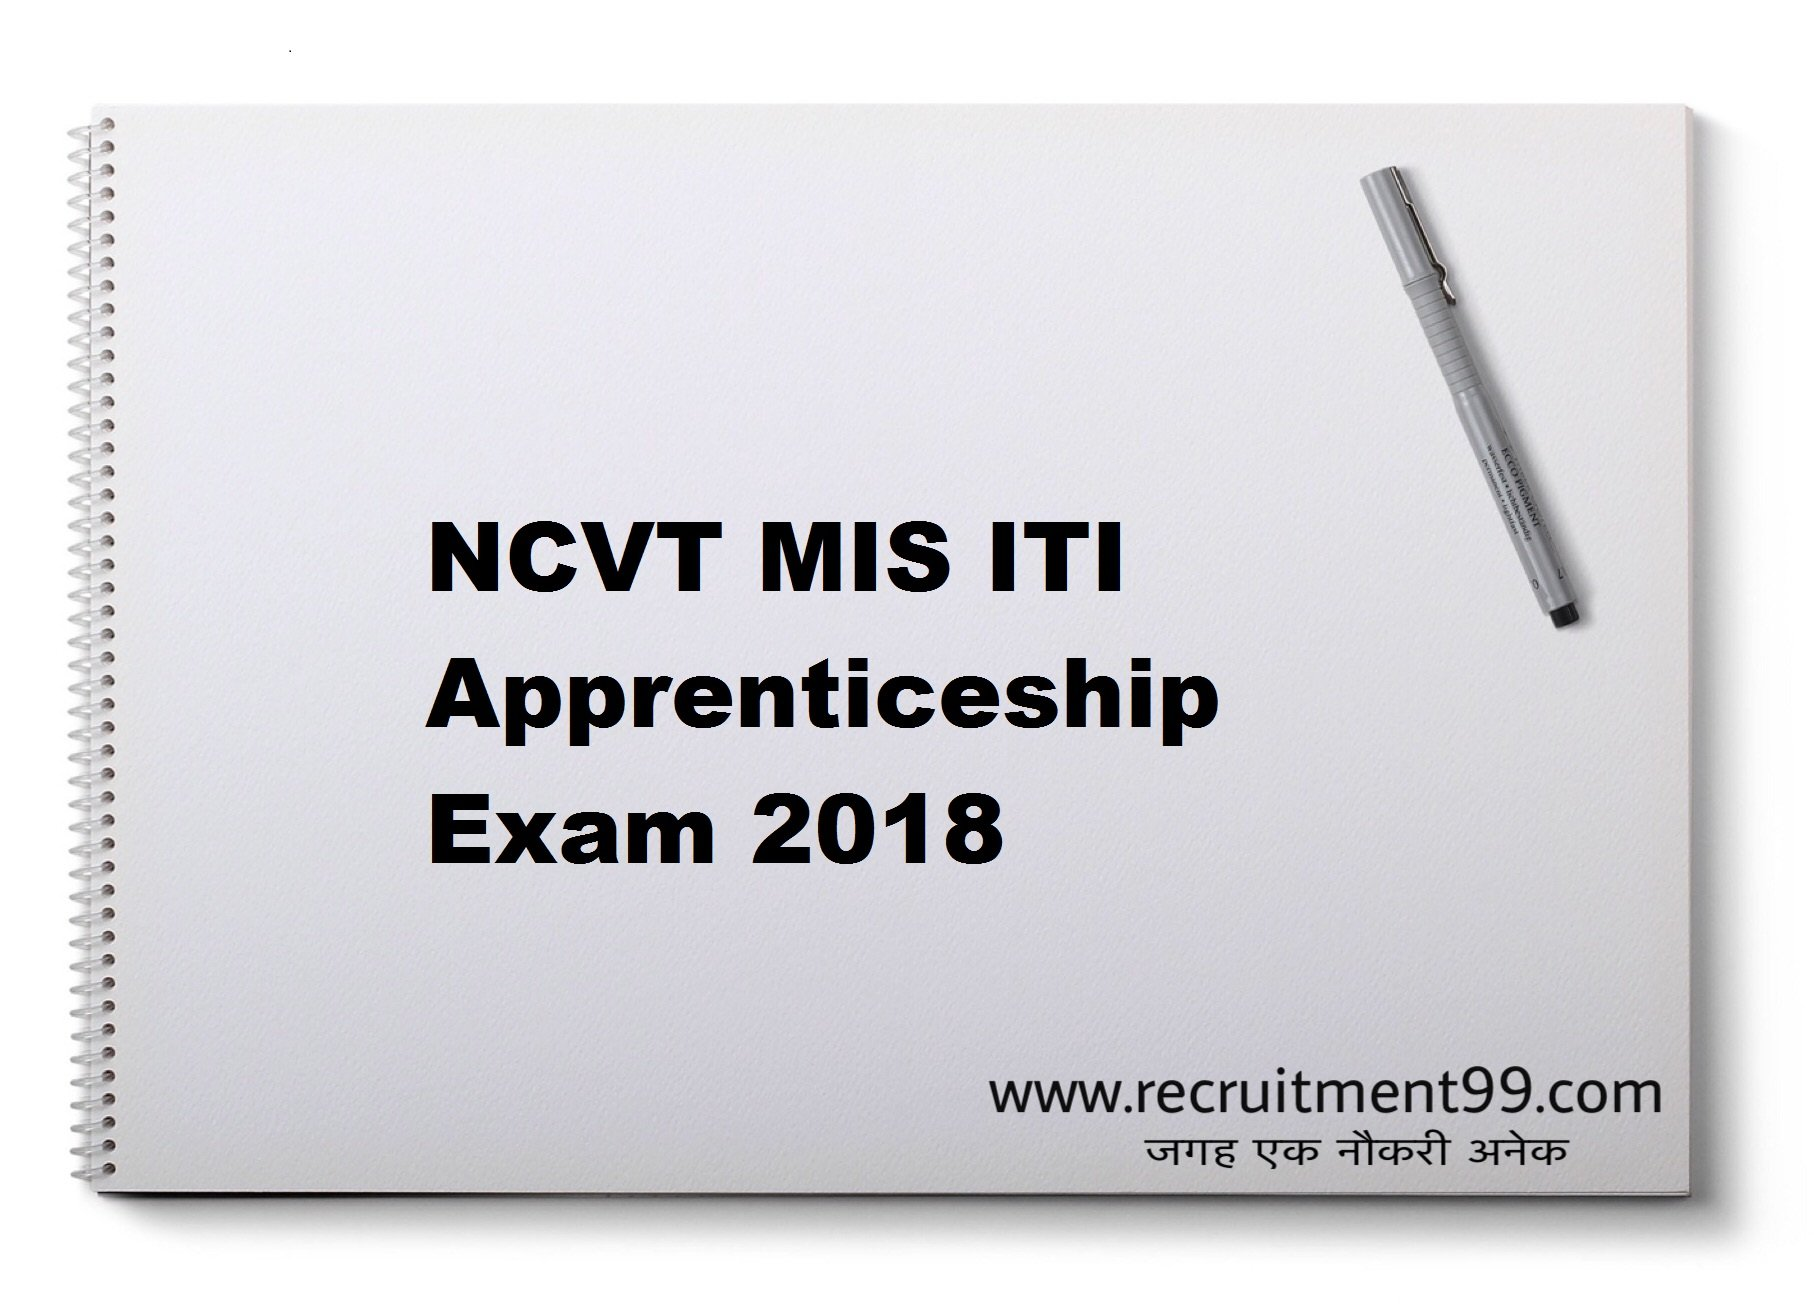 NCVT MIS Exam 2019 – ITI Apprenticeship Admit Card, Time Table, Result